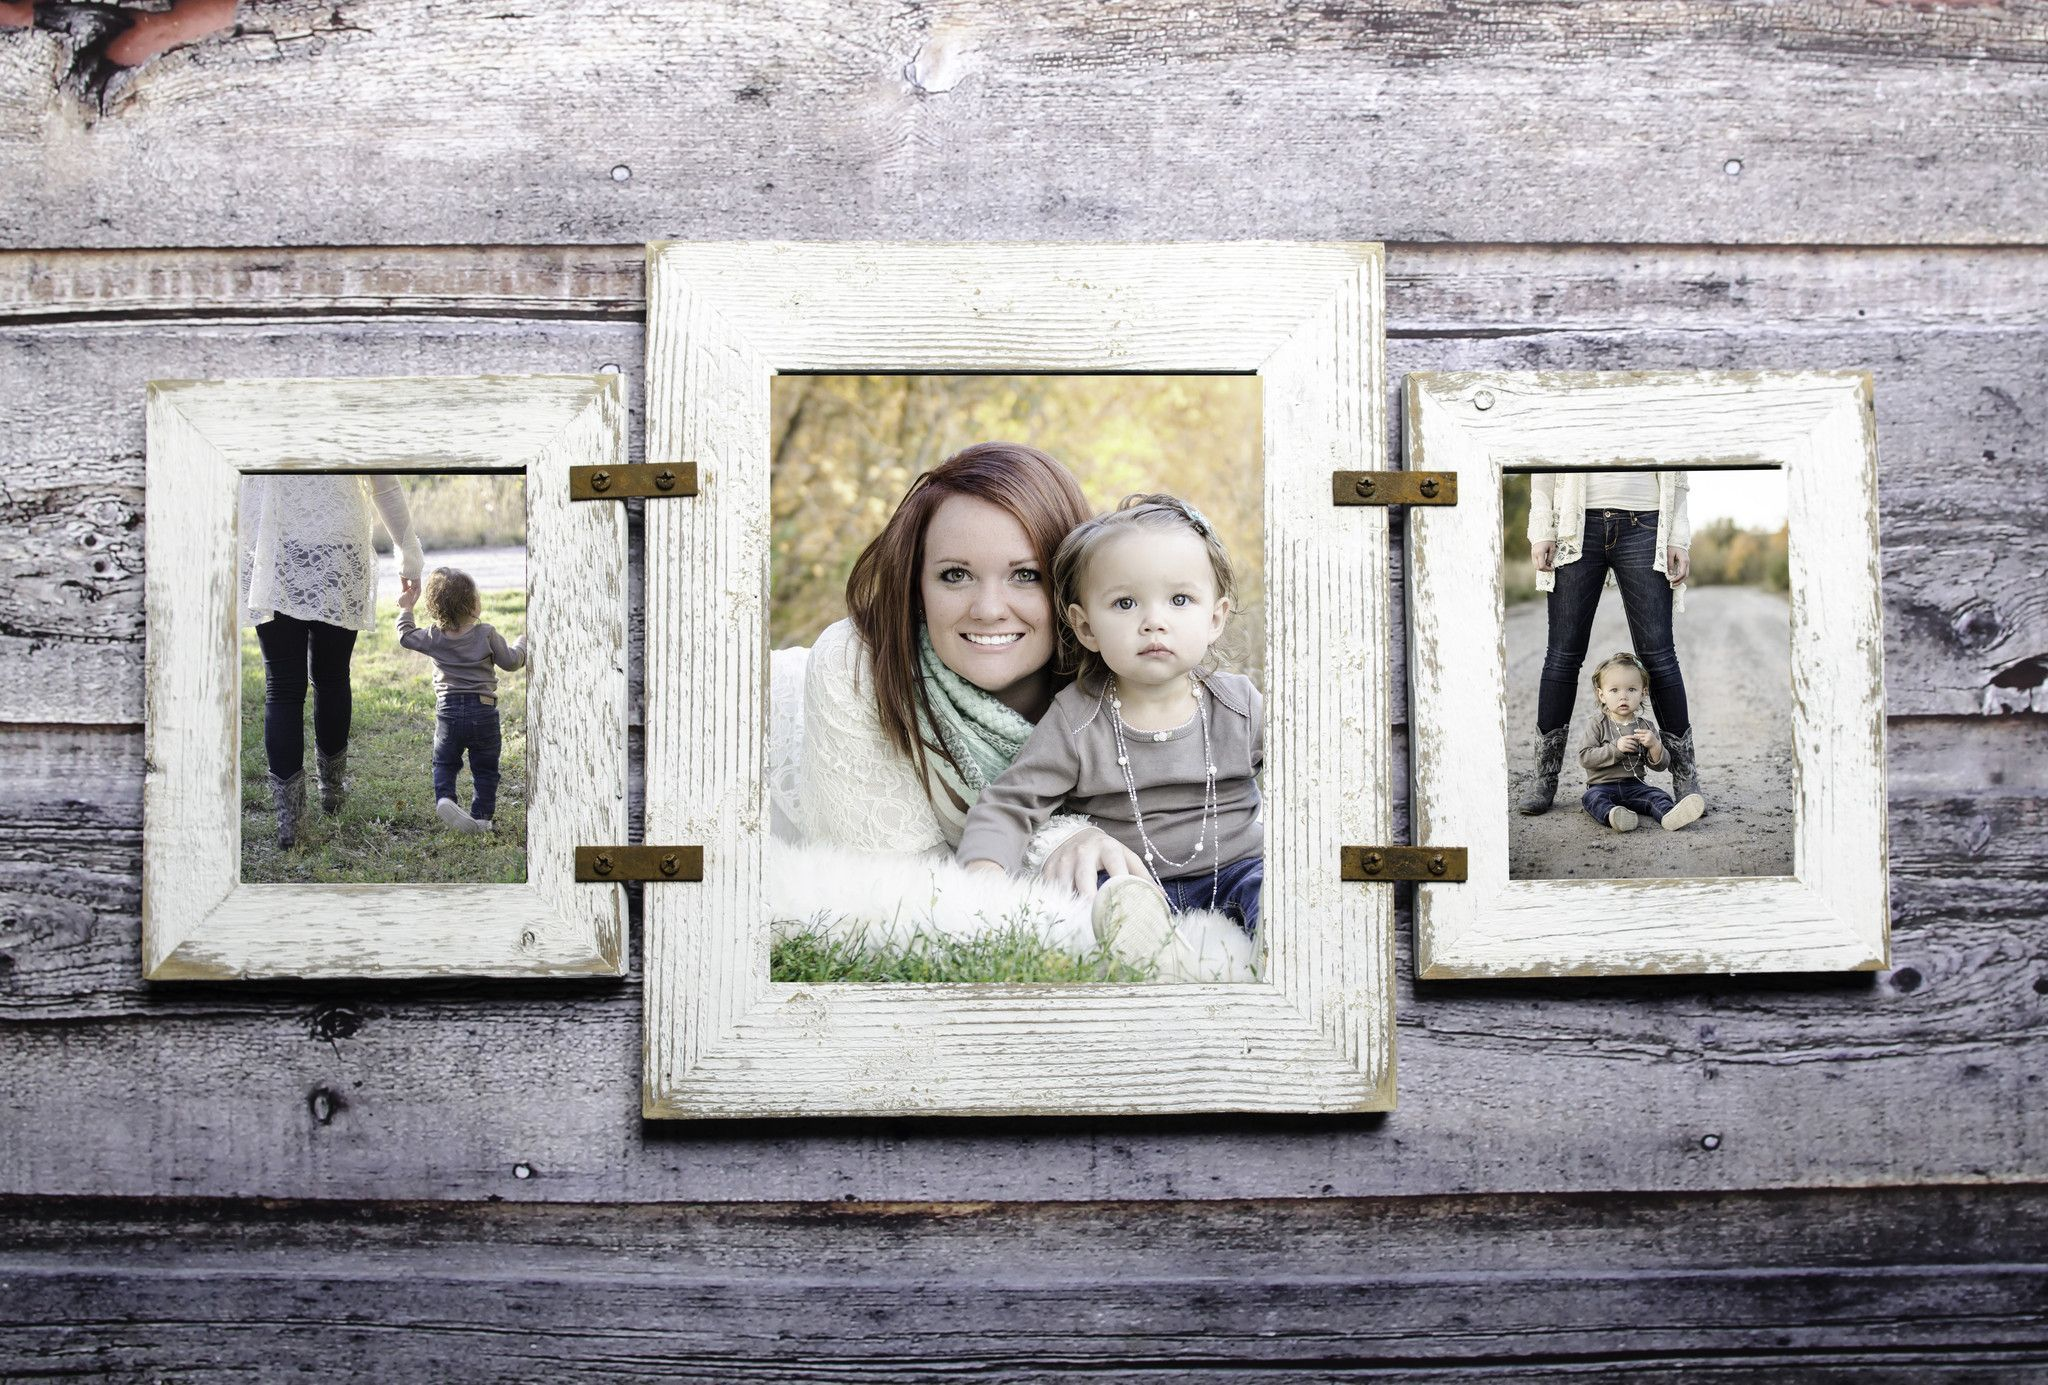 Barnwood Collage Frame 2 Hole 5x7 And 1 Hole 8x10 Multi Opening Frame With Images Rustic Picture Frames Rustic Decor Rustic Wallpaper